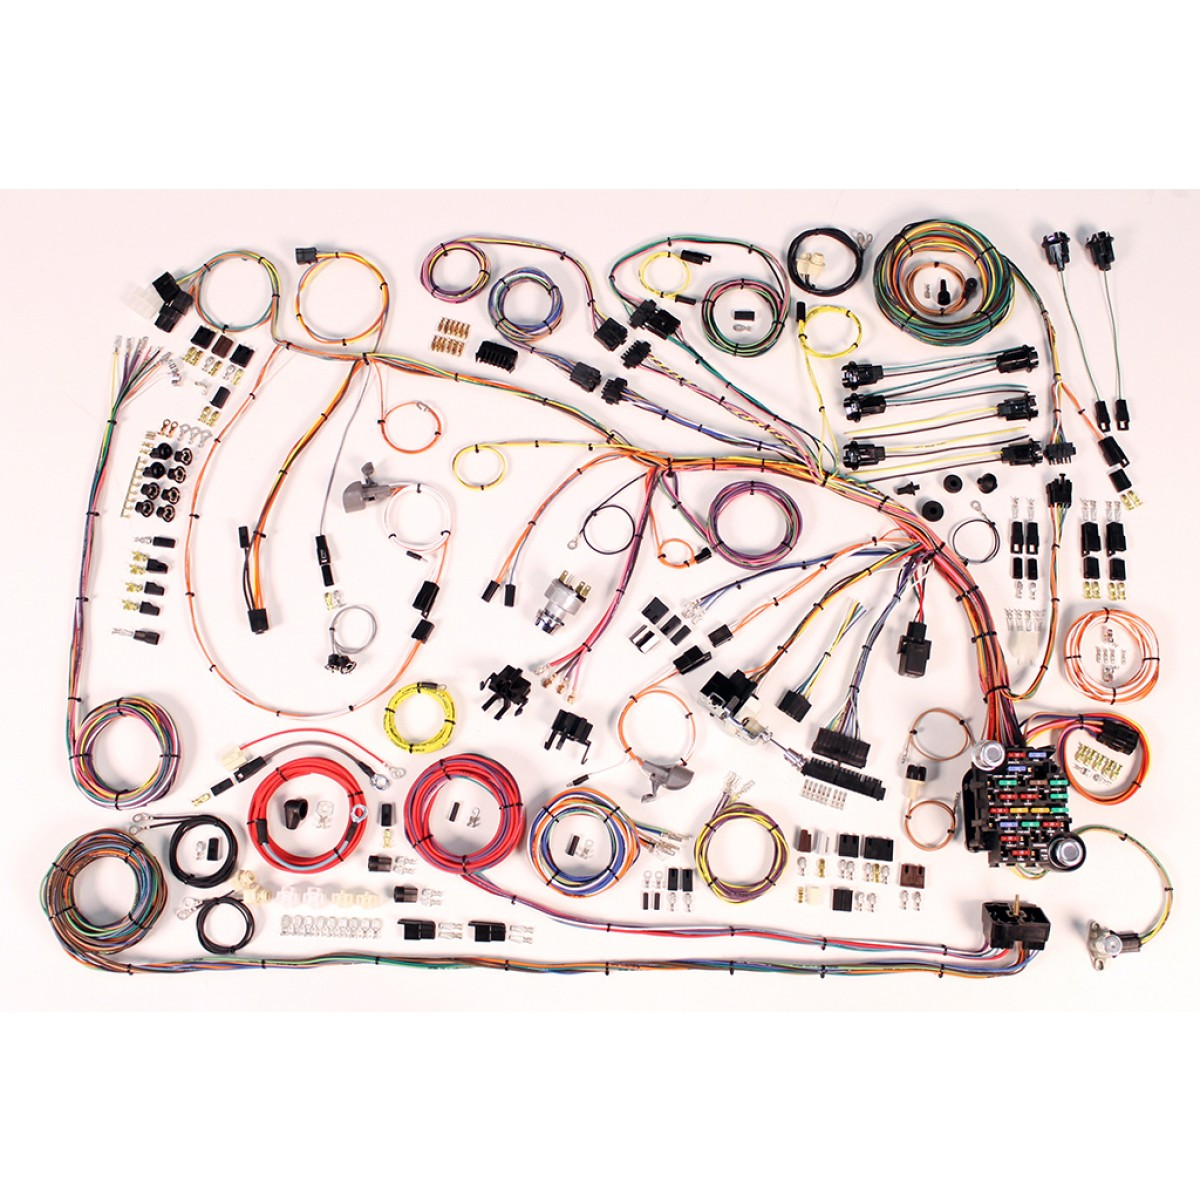 wiring harness kit 1966 1968 impala part 510372 66 68 impala full wire harness 510372 1966 1968 impala wire harness complete wiring harness kit 1966 1965 impala wiring harness at eliteediting.co